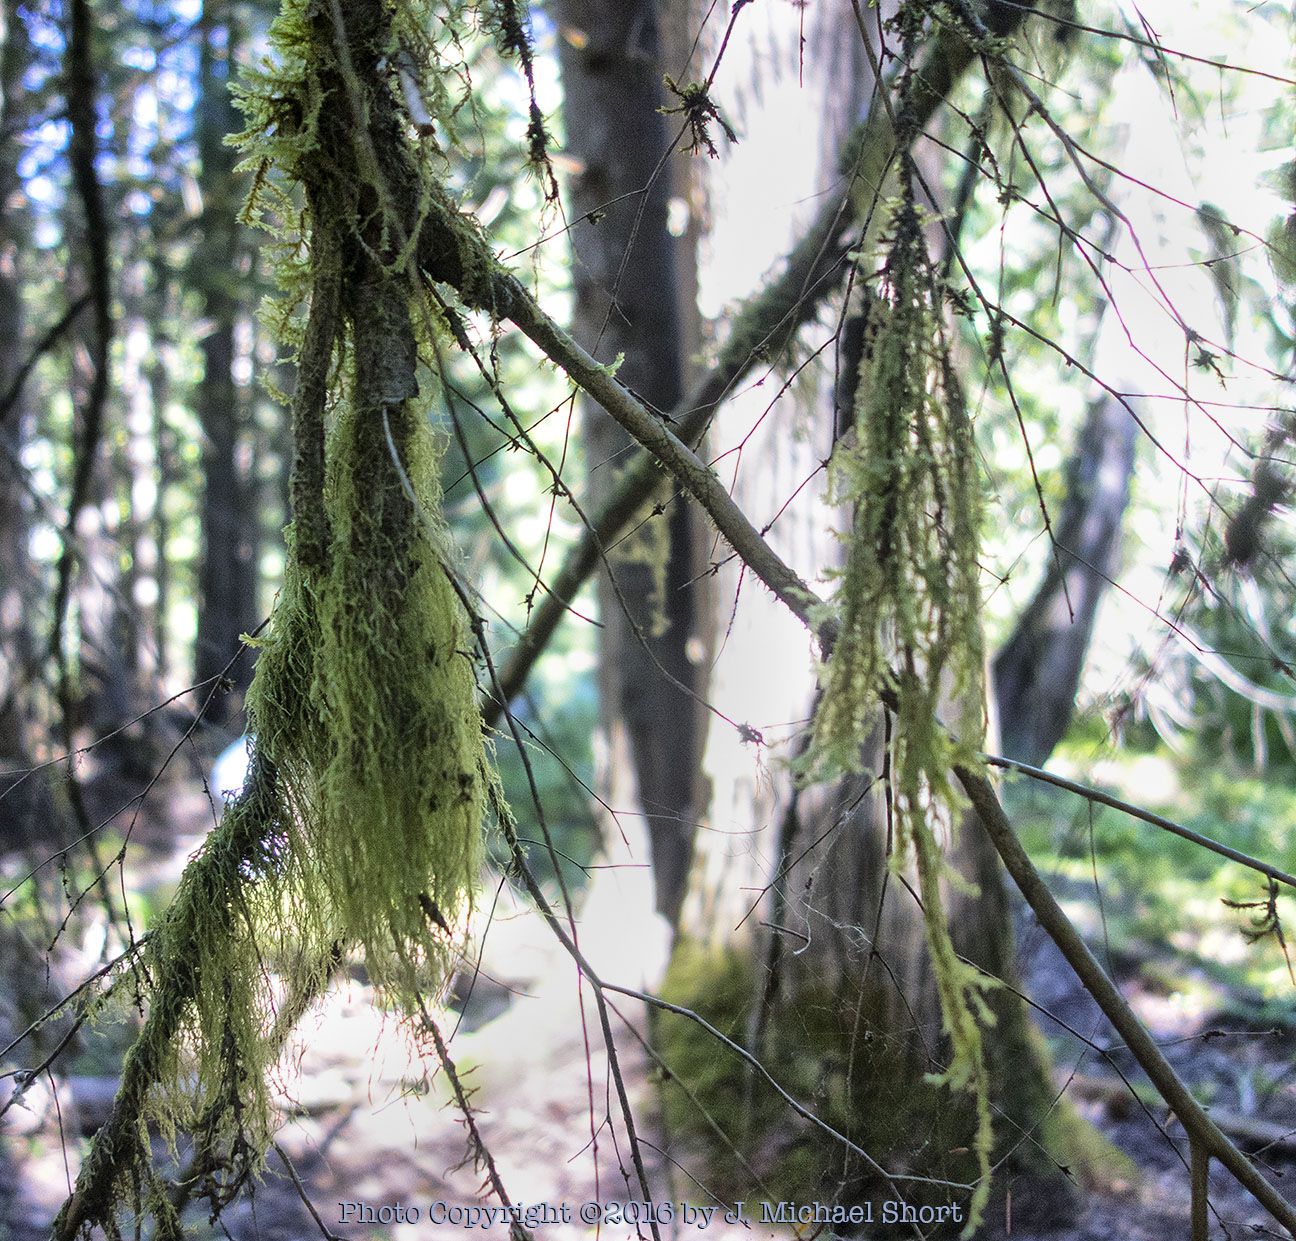 Court rules in favor of suspending the Hanna Flats timber sale